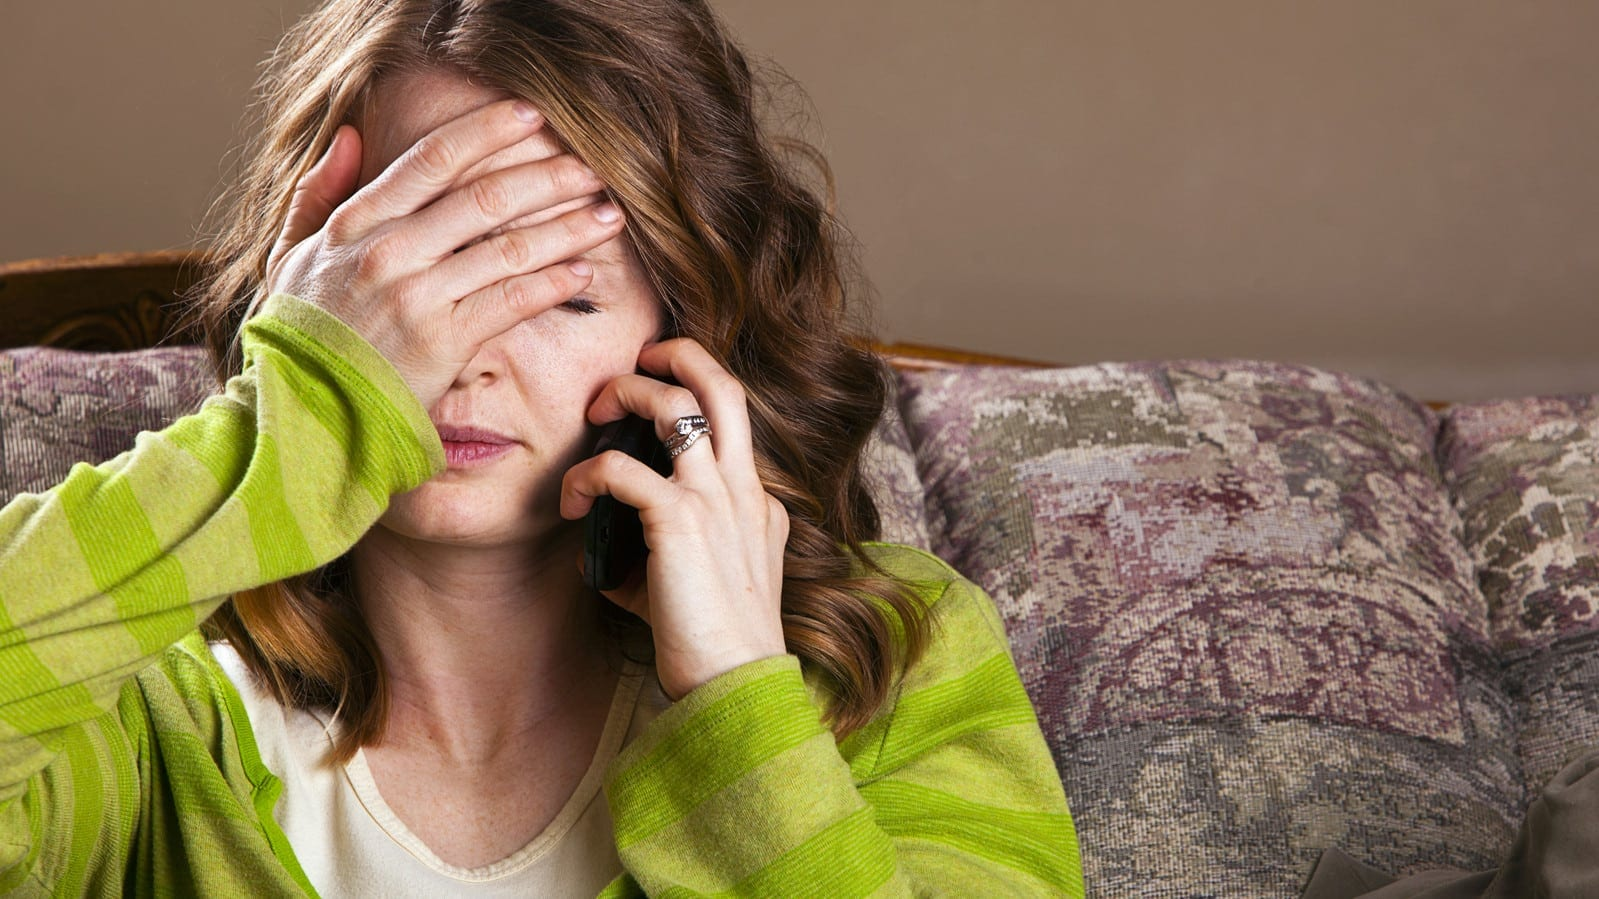 Young Woman With Worried Look On Her Face Stock Photo